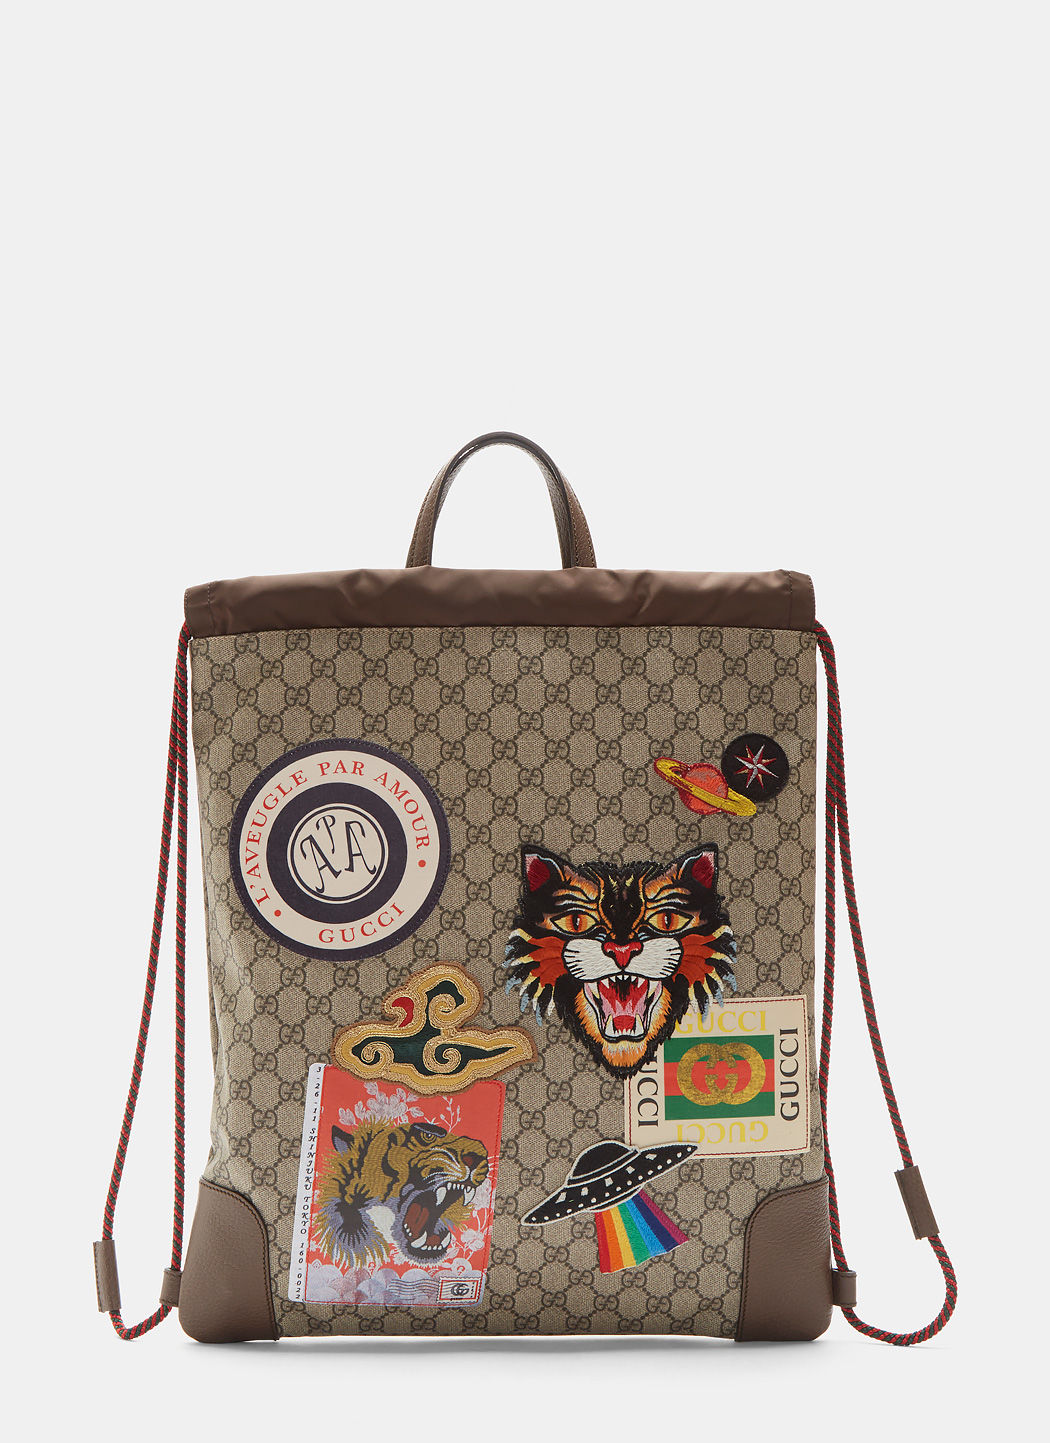 c2f7c5162610 Gucci Courrier Soft Gg Supreme Drawstring Backpack In Neutrals ...